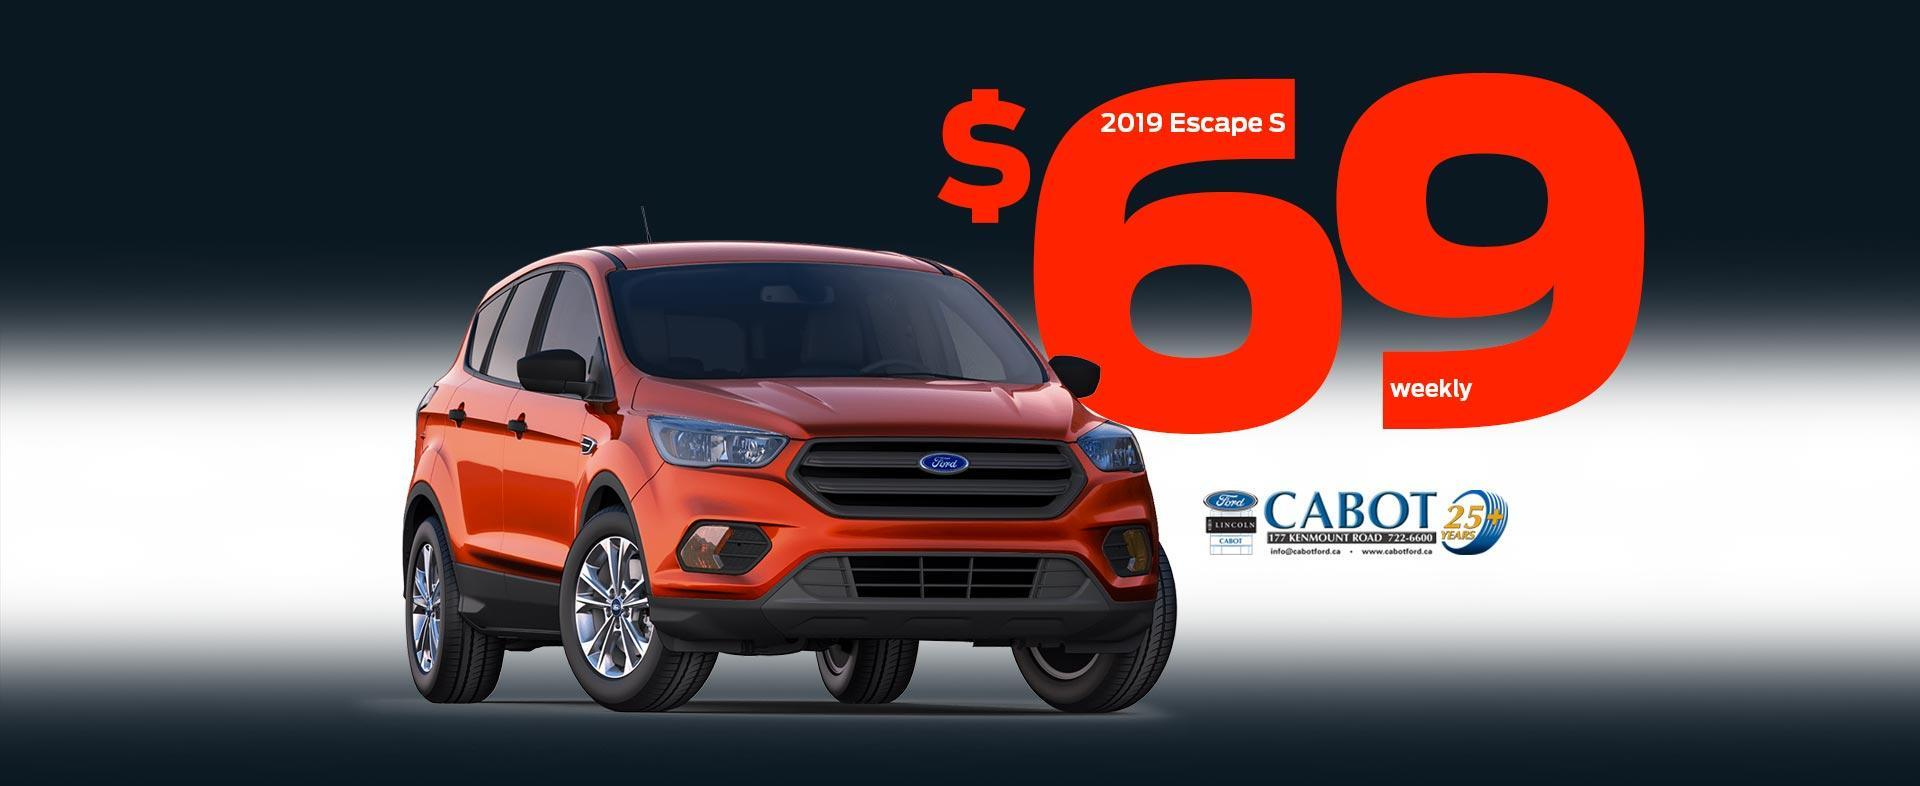 Get the 2019 Escape S for just $69 weekly, + tax and license. $0 Down.